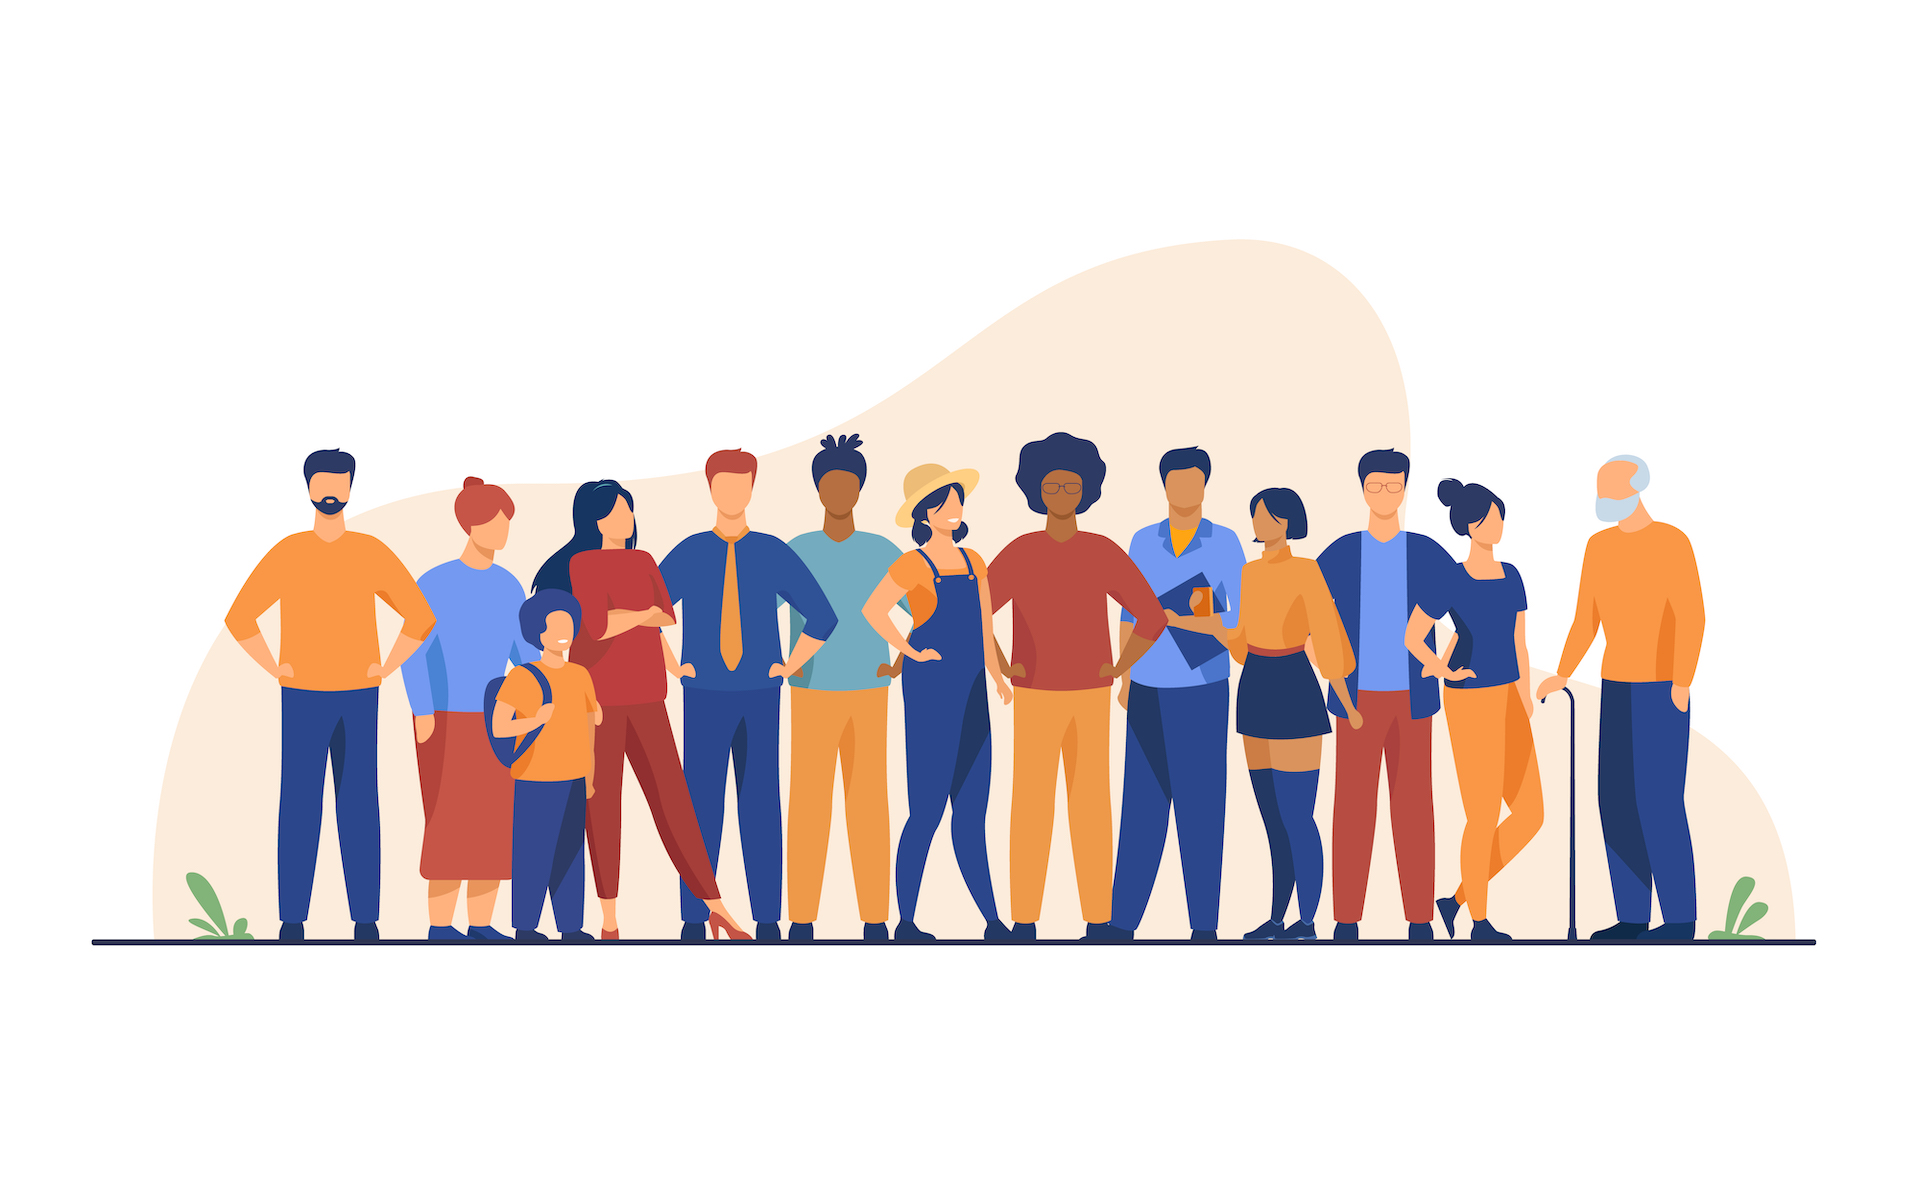 Diverse crowd of people of different ages and races. Multiracial community members standing together. Vector illustration for civil society, diversity, multinational public